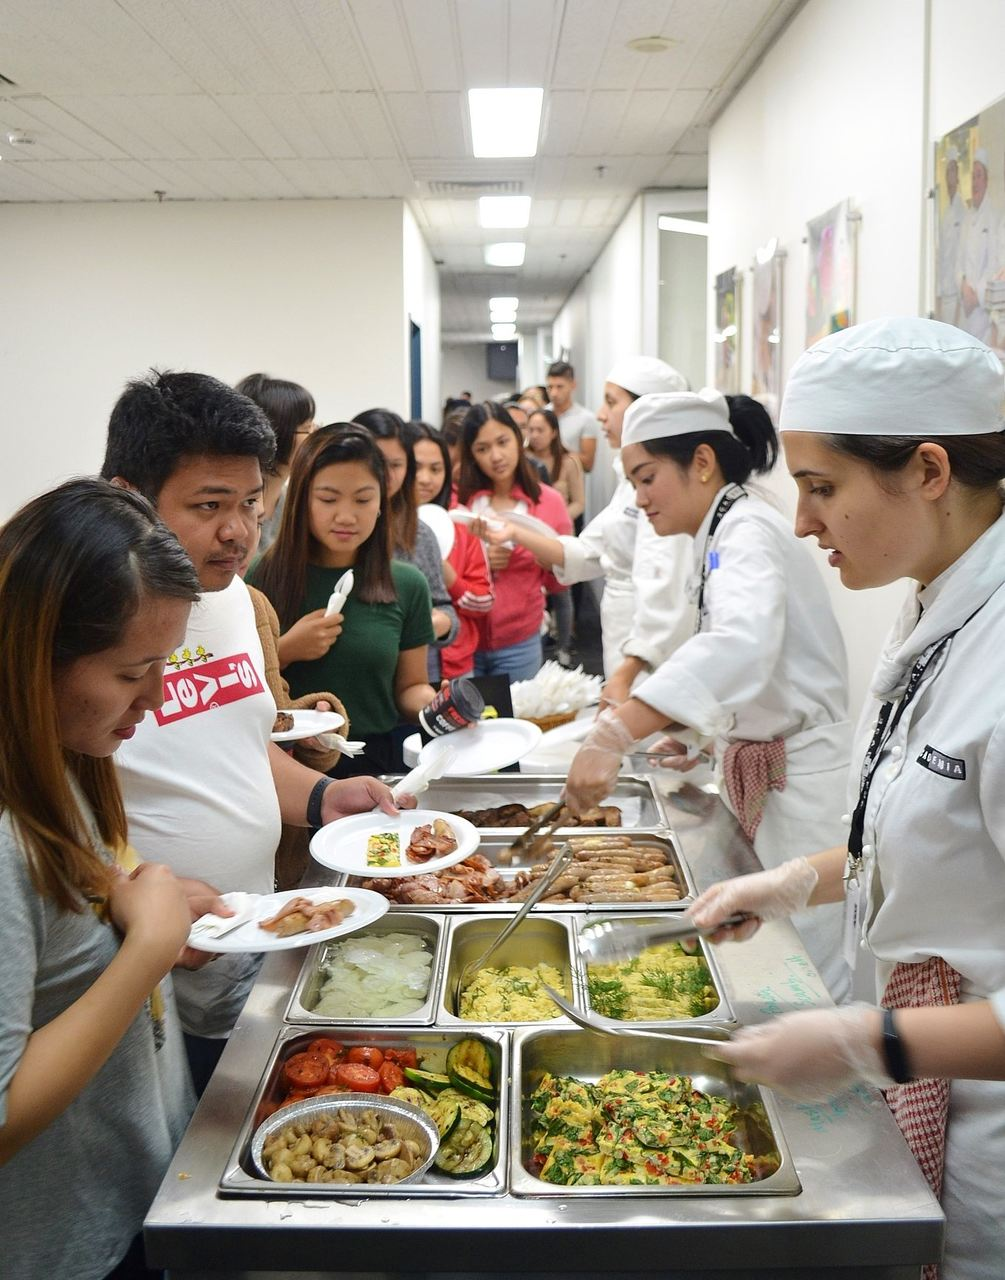 Cook, Meal, Food, Cooking, Lunch, Culinary art, Chef, Dish, Cuisine, À la carte food, Service, Comfort food, Delicacy, Food processing, Culinary arts, Dish